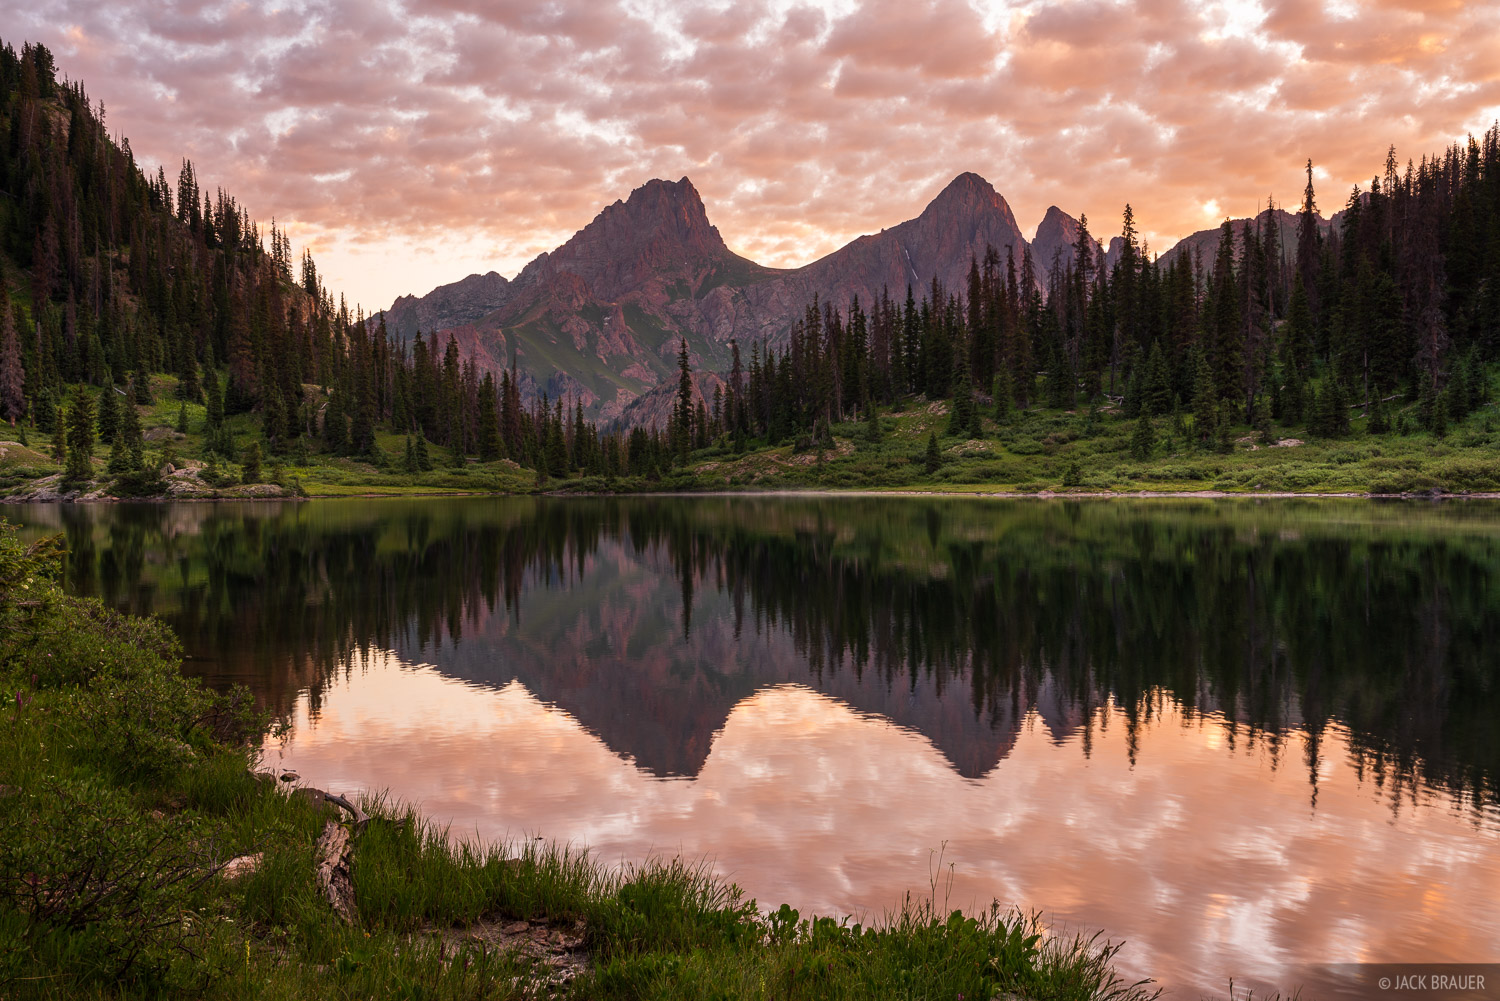 Colorado, Needle Mountains, Pigeon Peak, San Juan Mountains, Turret Peak, Weminuche Wilderness, reflection